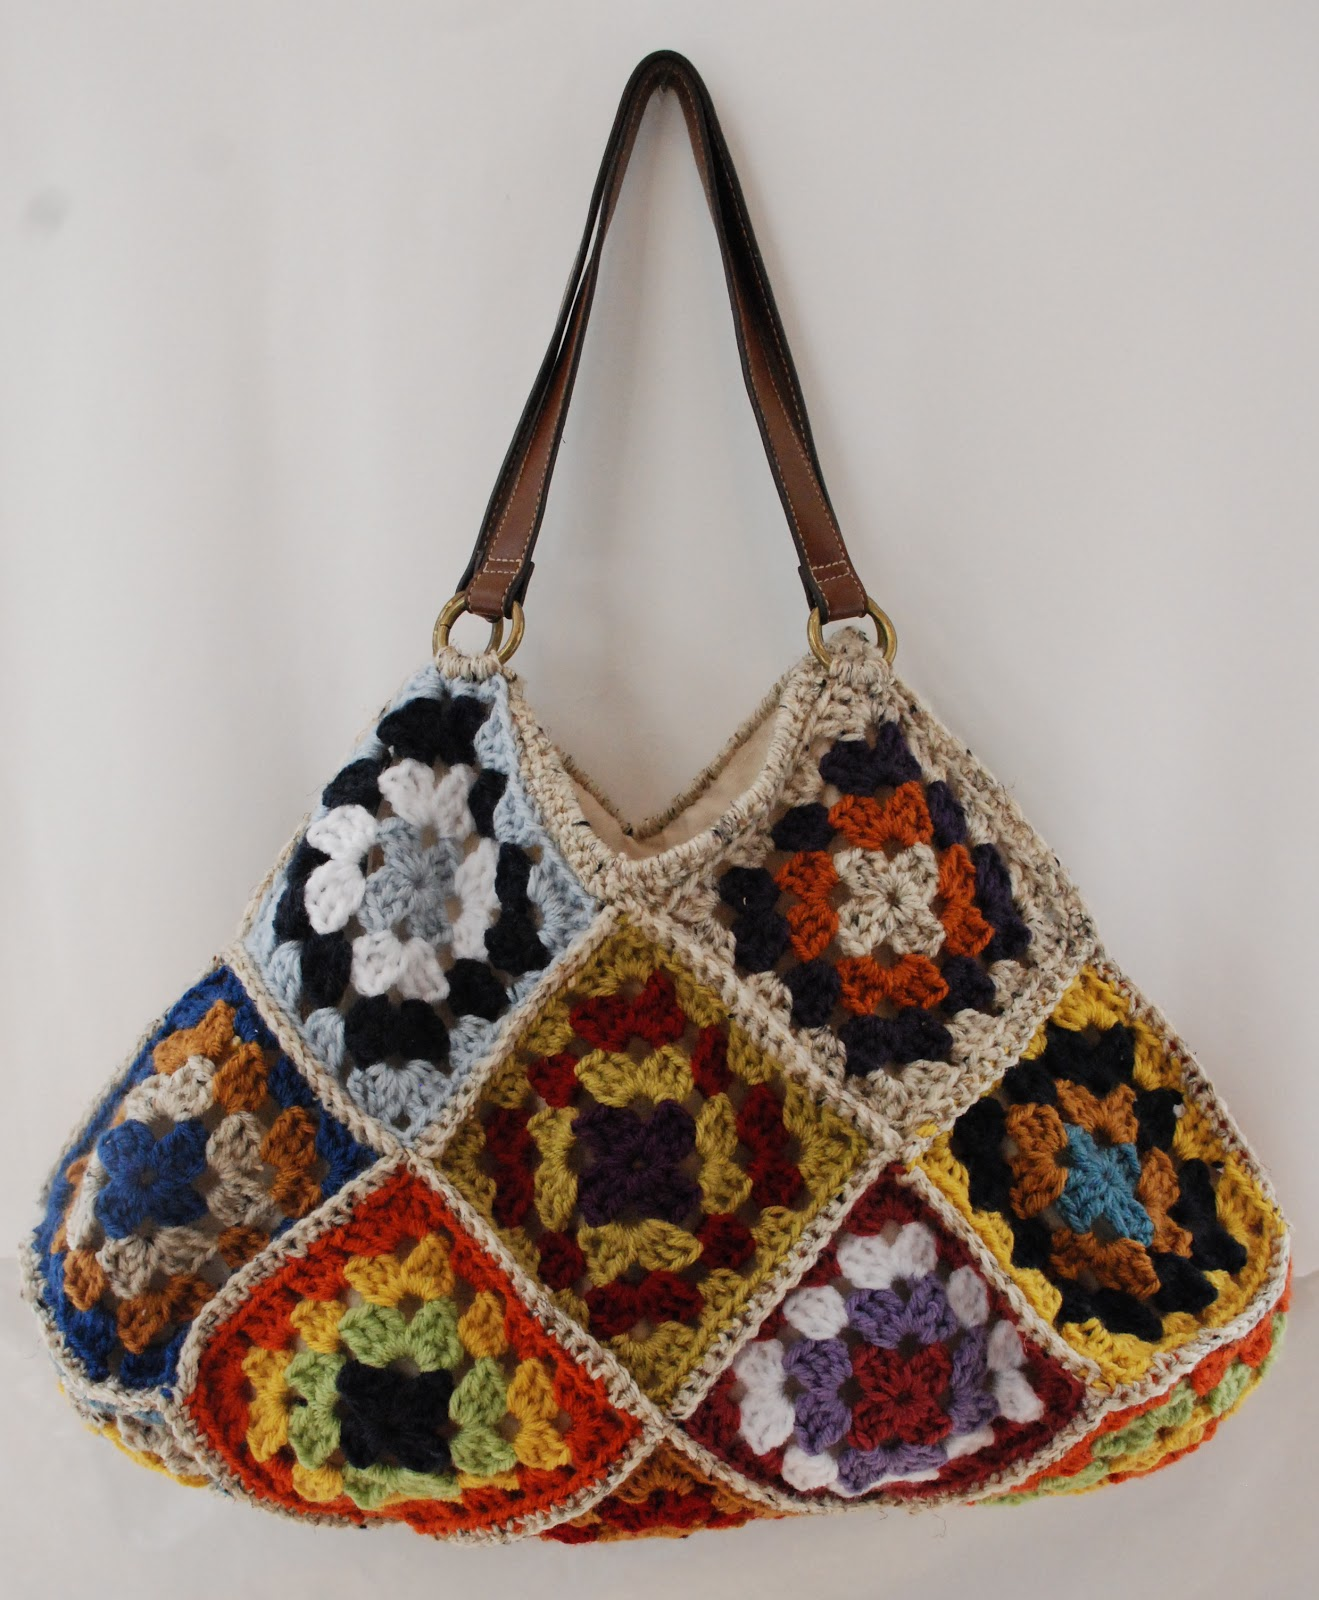 Kristis Twist: Crochet granny square bags, laptop sleeve